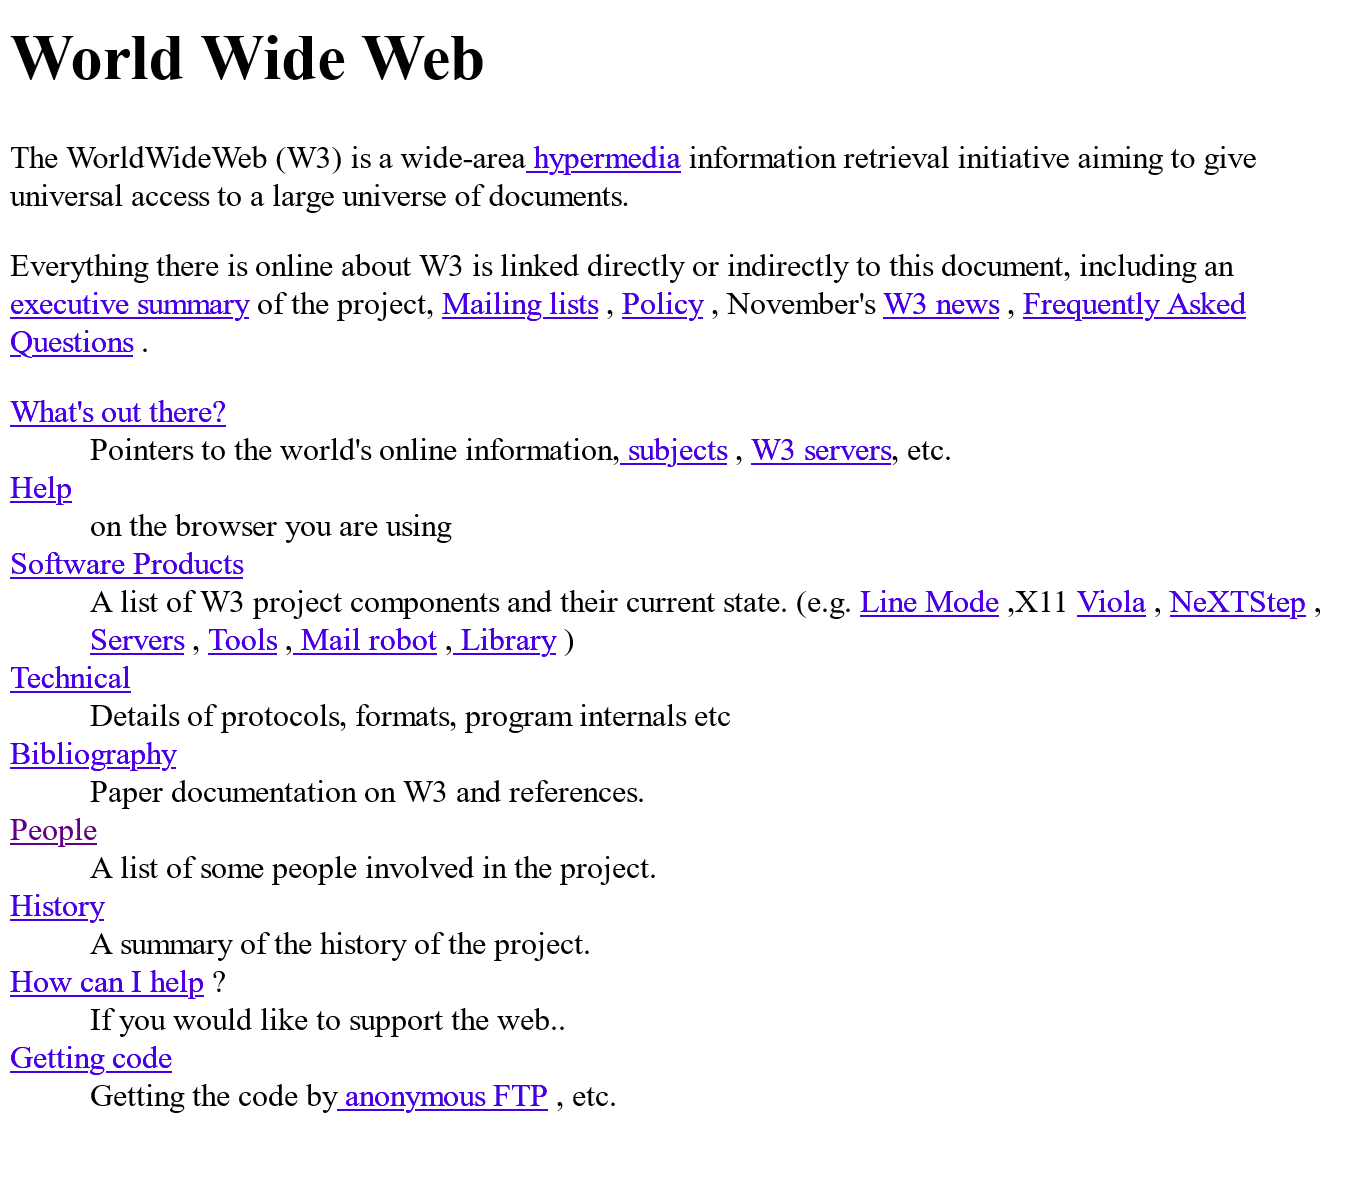 Image of the very first web page—http://info.cern.ch/hypertext/WWW/TheProject.html.